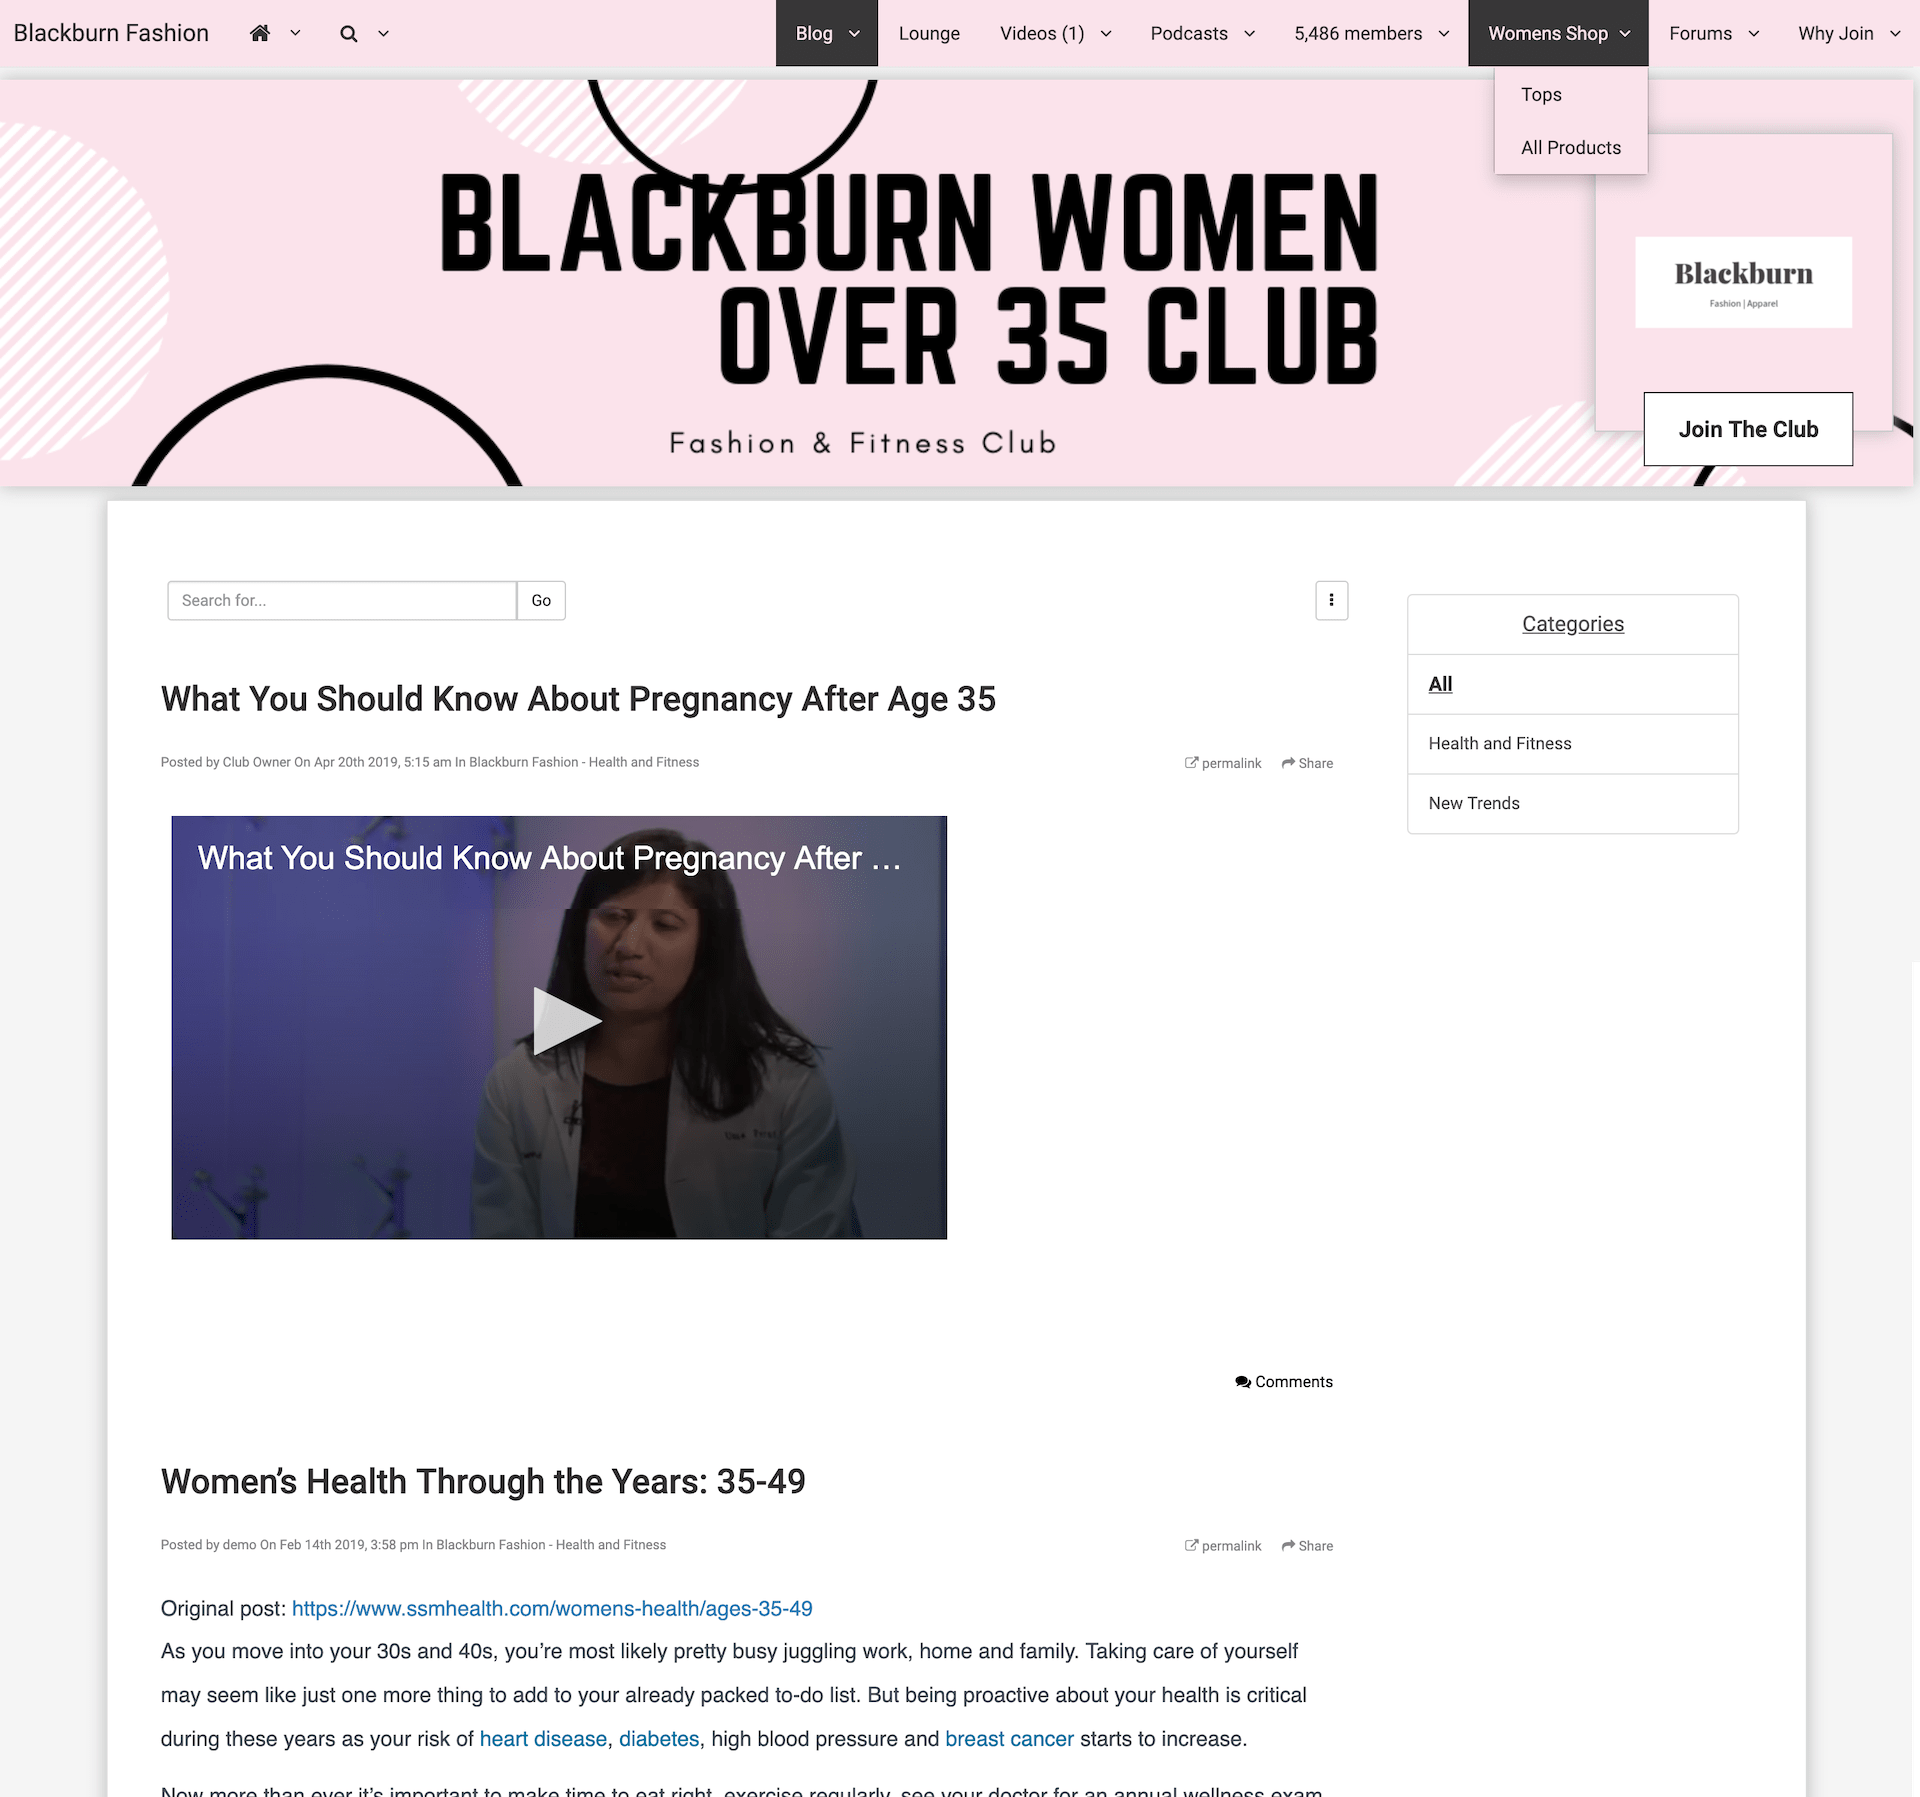 Blackburn Women Over 35 Fashion Club Blog